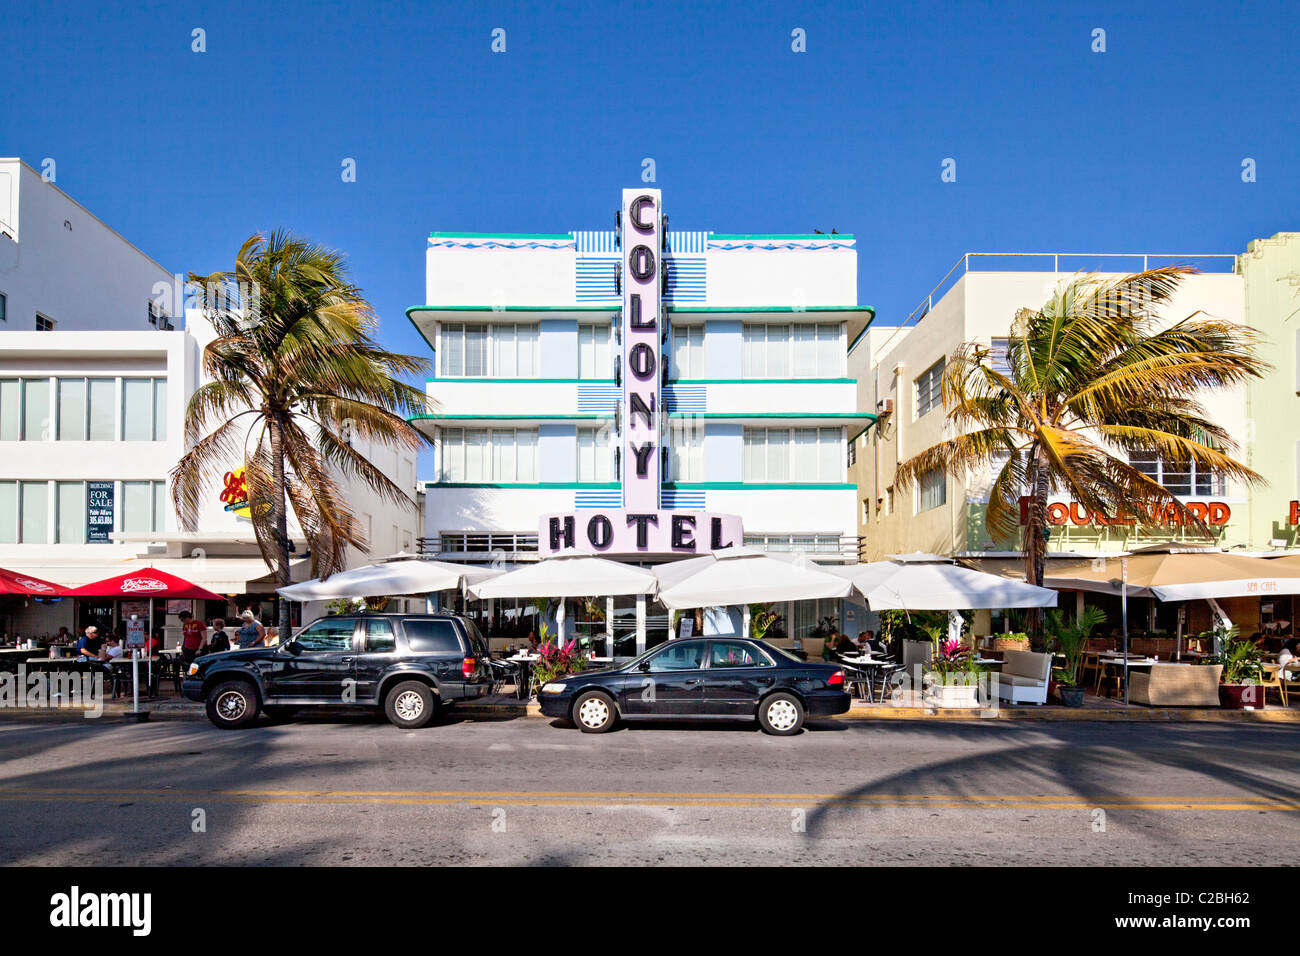 Colony Hotel, South Beach, Miami - Stock Image